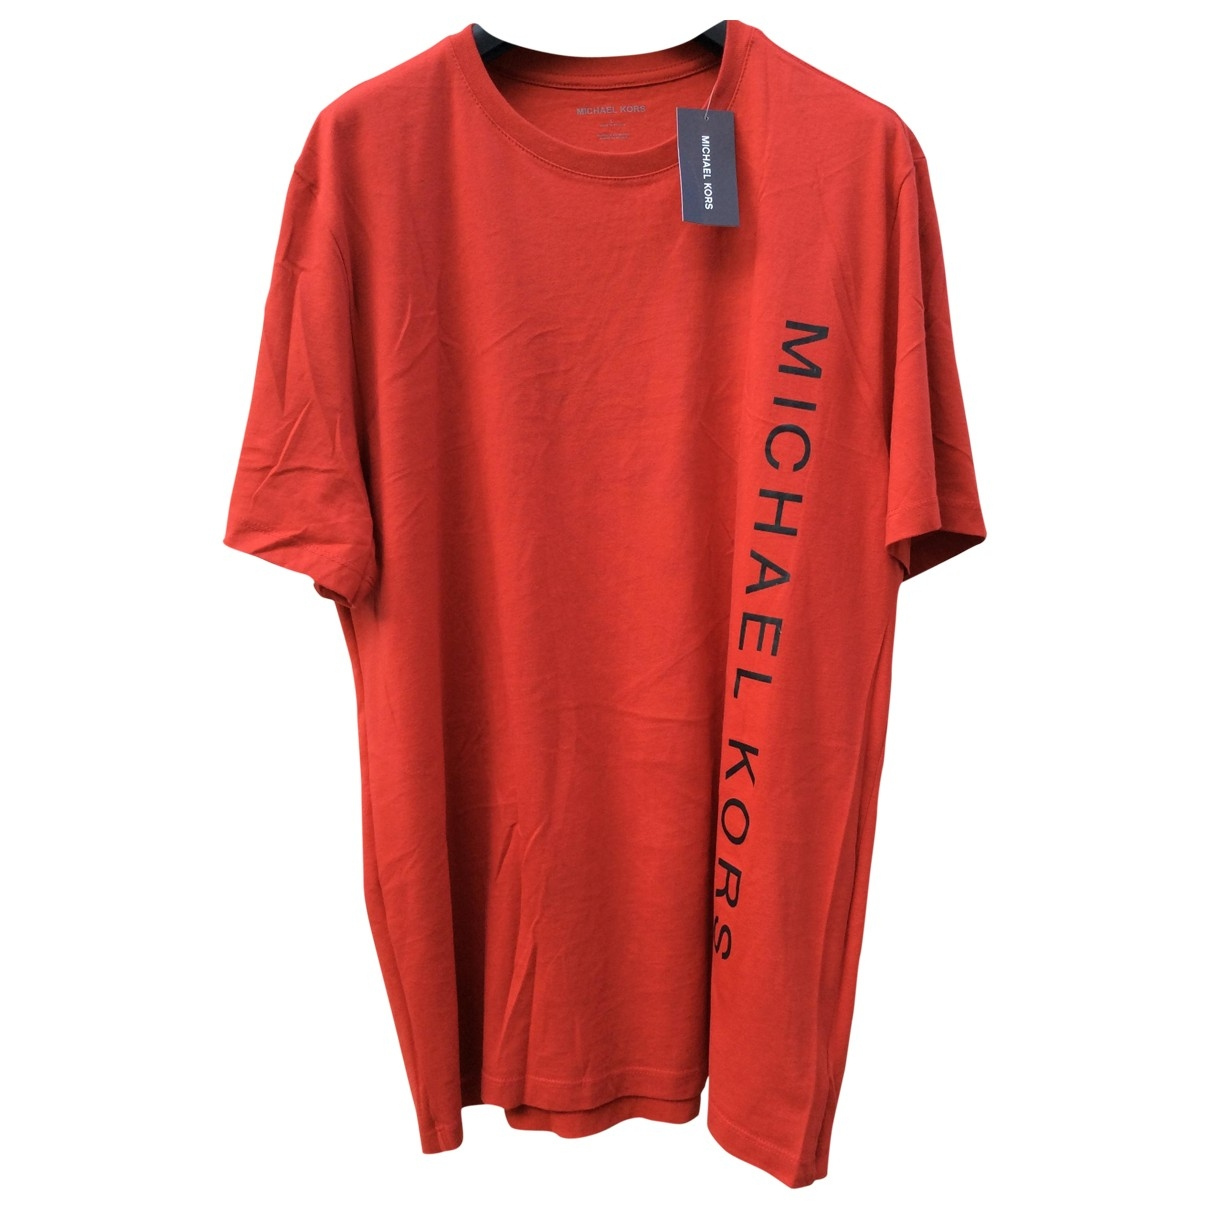 Michael Kors \N Red Cotton T-shirts for Men L International